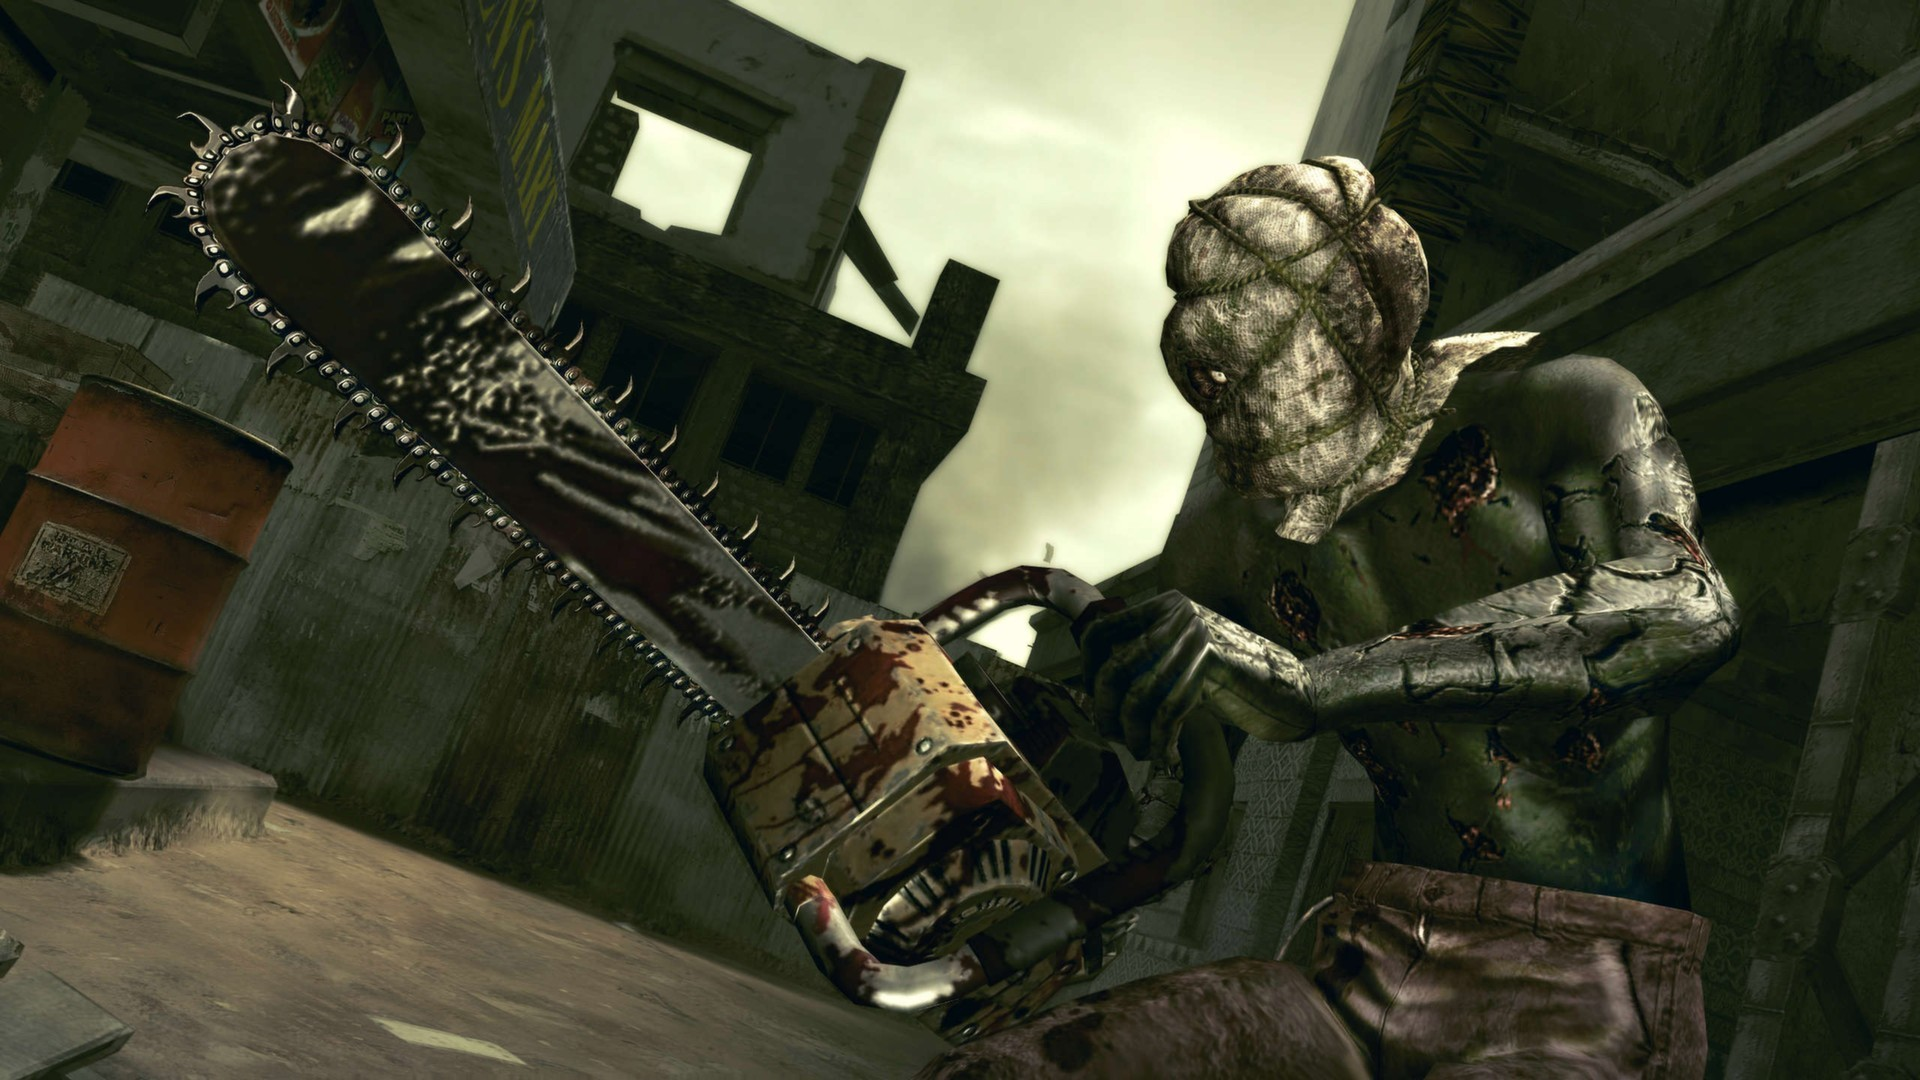 Resident Evil 5 And 6 Coming To Nintendo Switch Den Of Geek